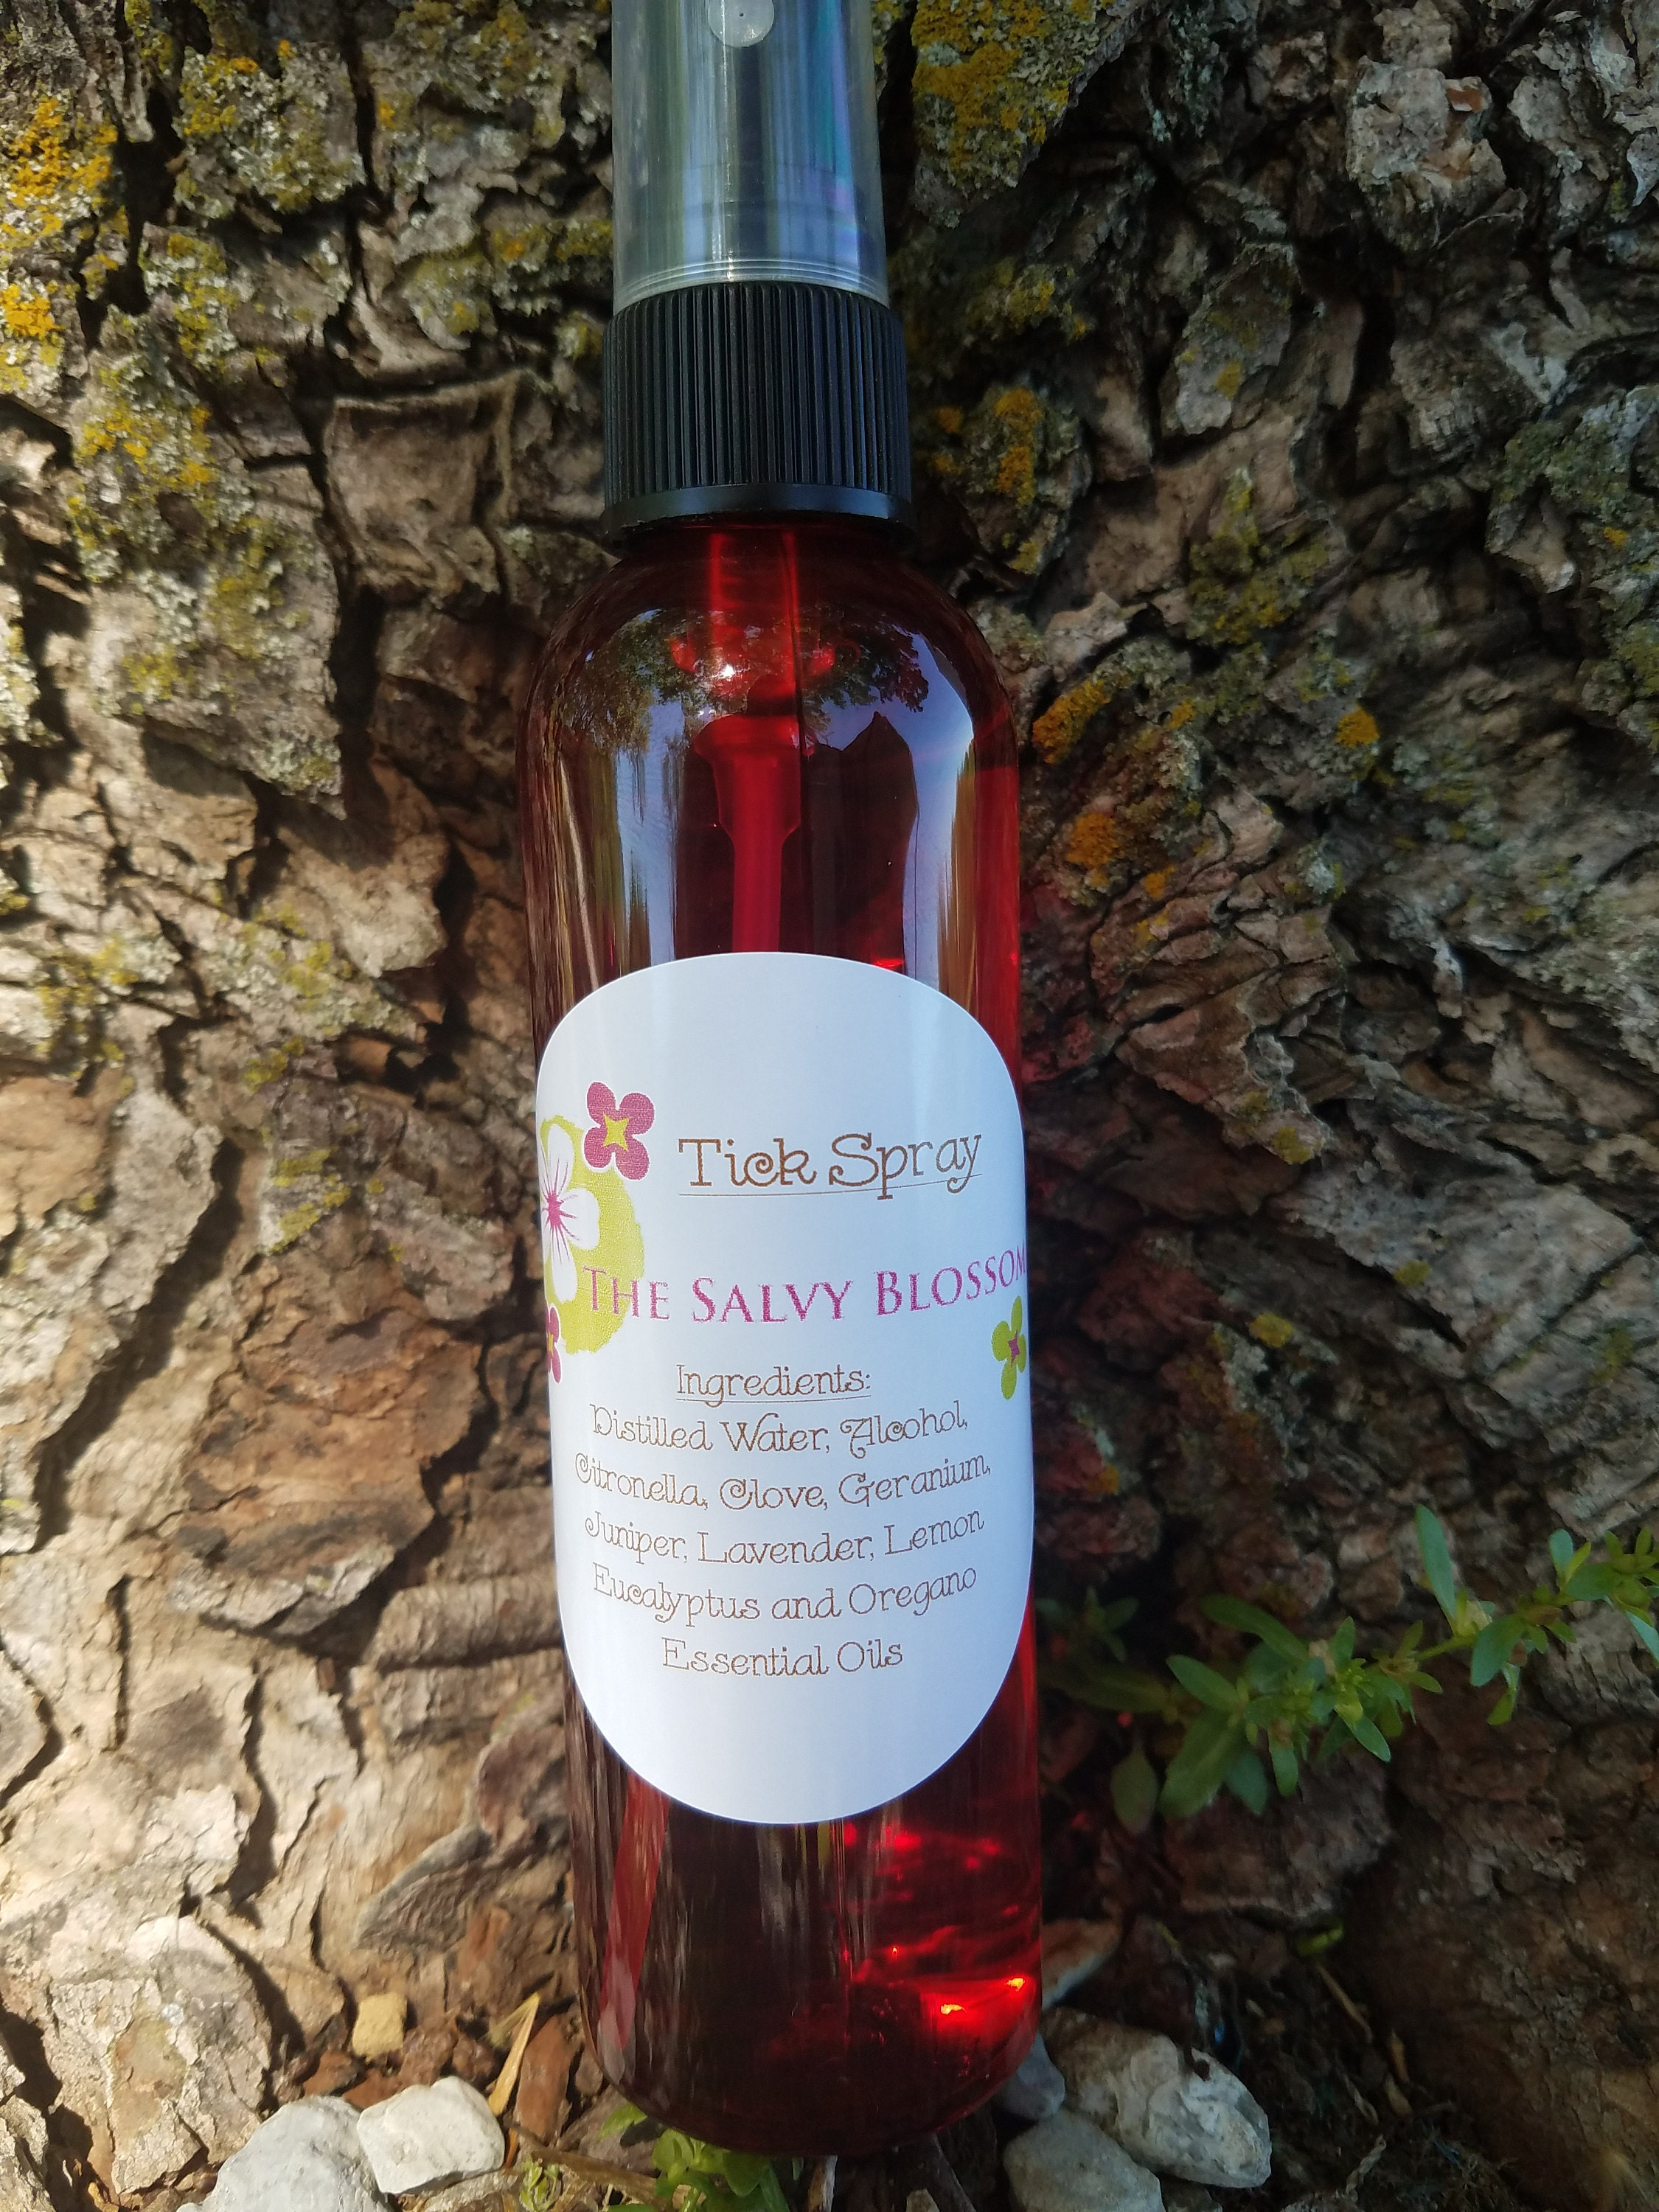 All Natural, Nontoxic, Chemical and Dye Free Tick Repellent made from Essential Oils.